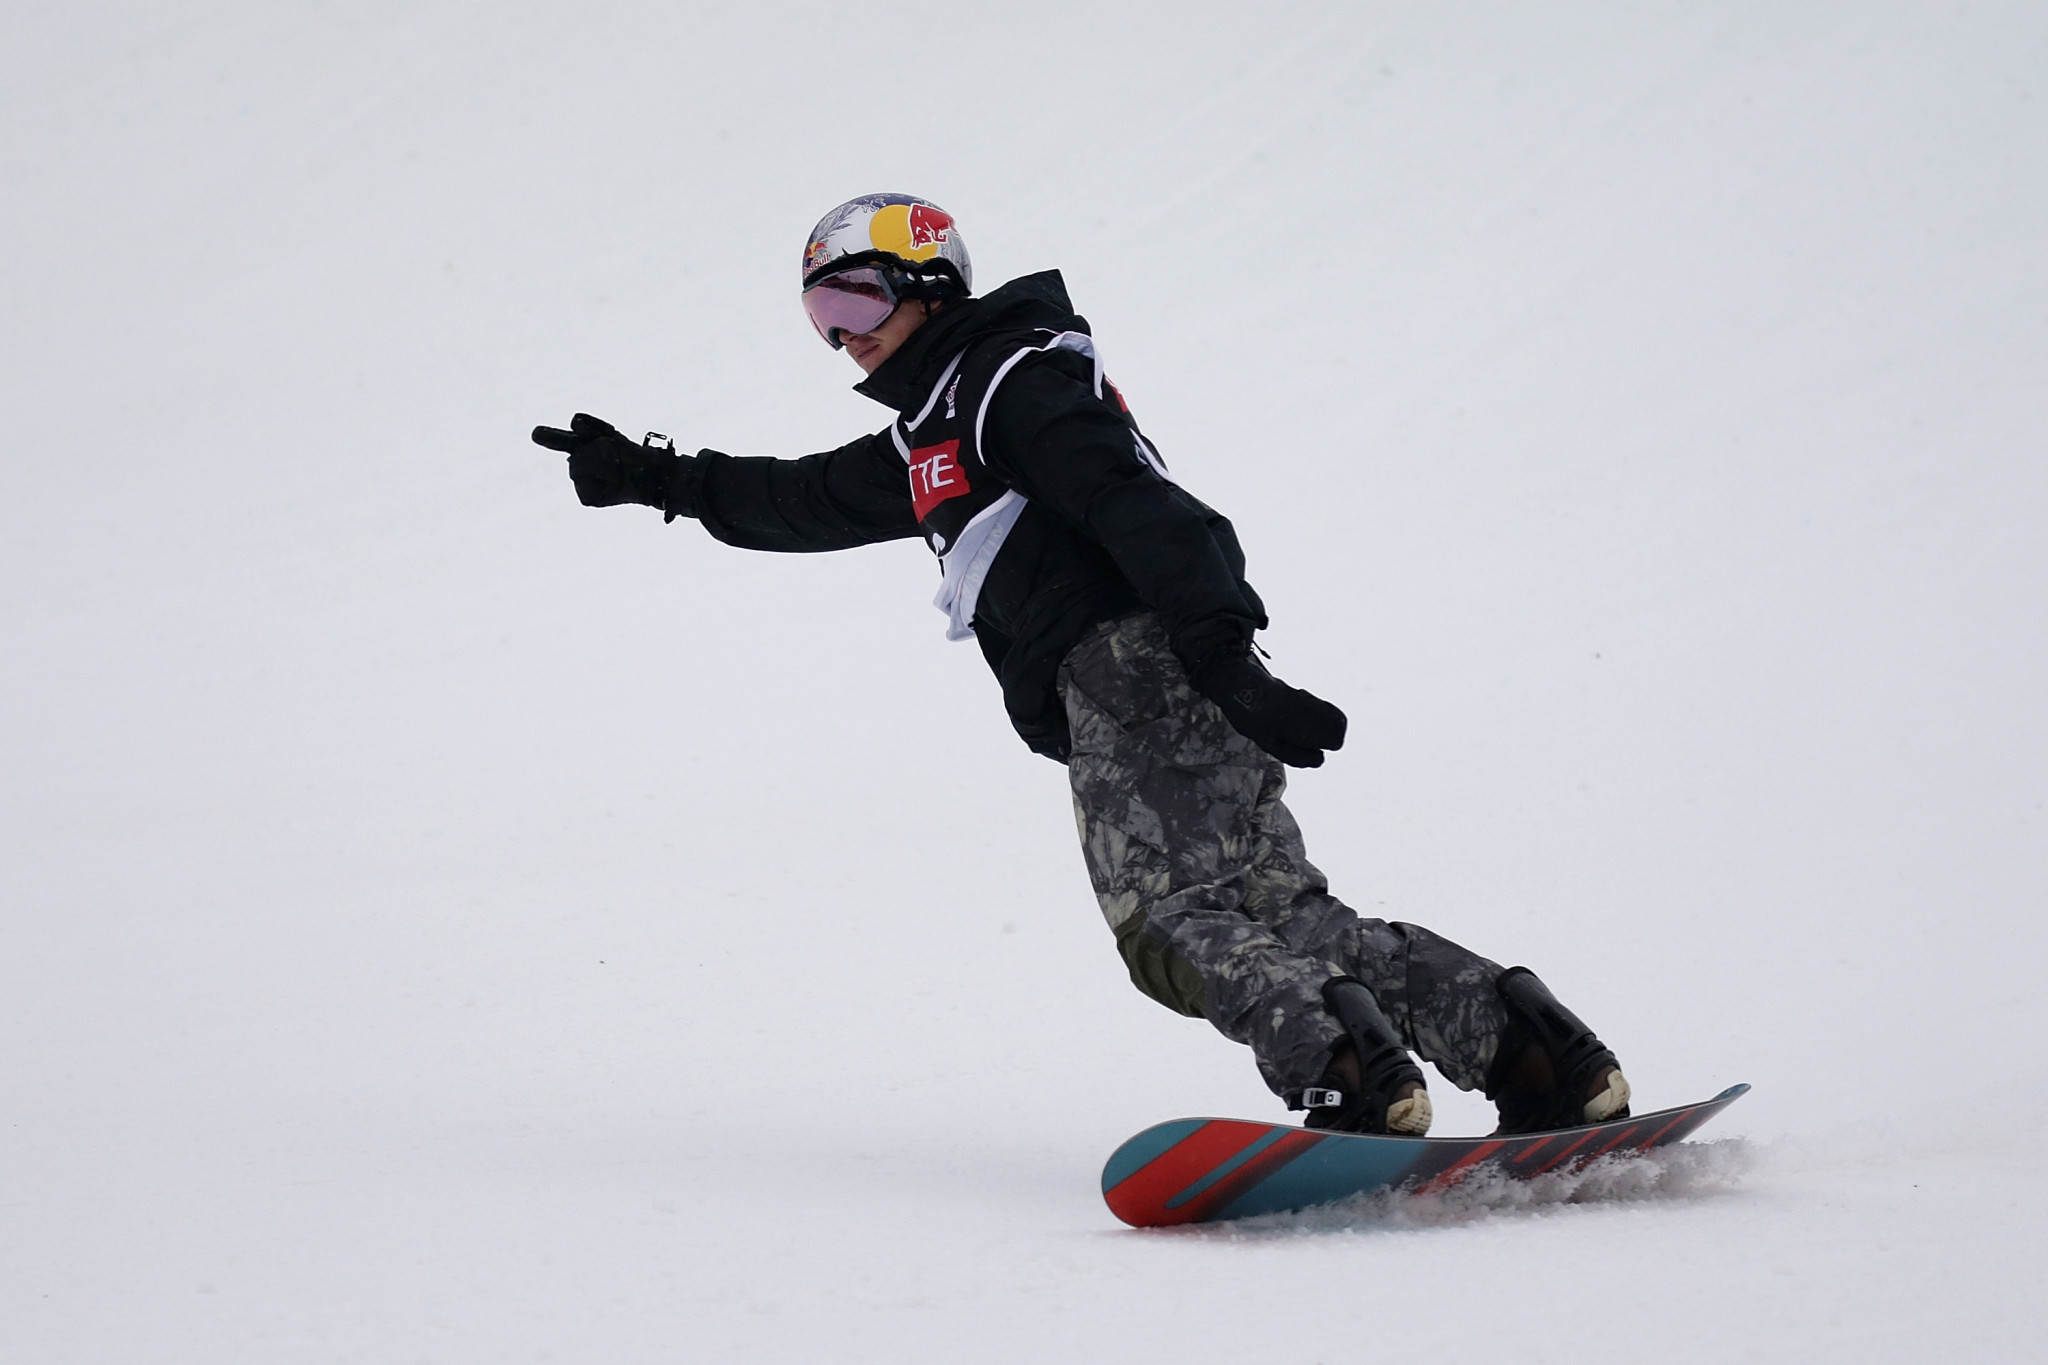 McMorris to return from injury at Snowboard Big Air World Cup in Beijing